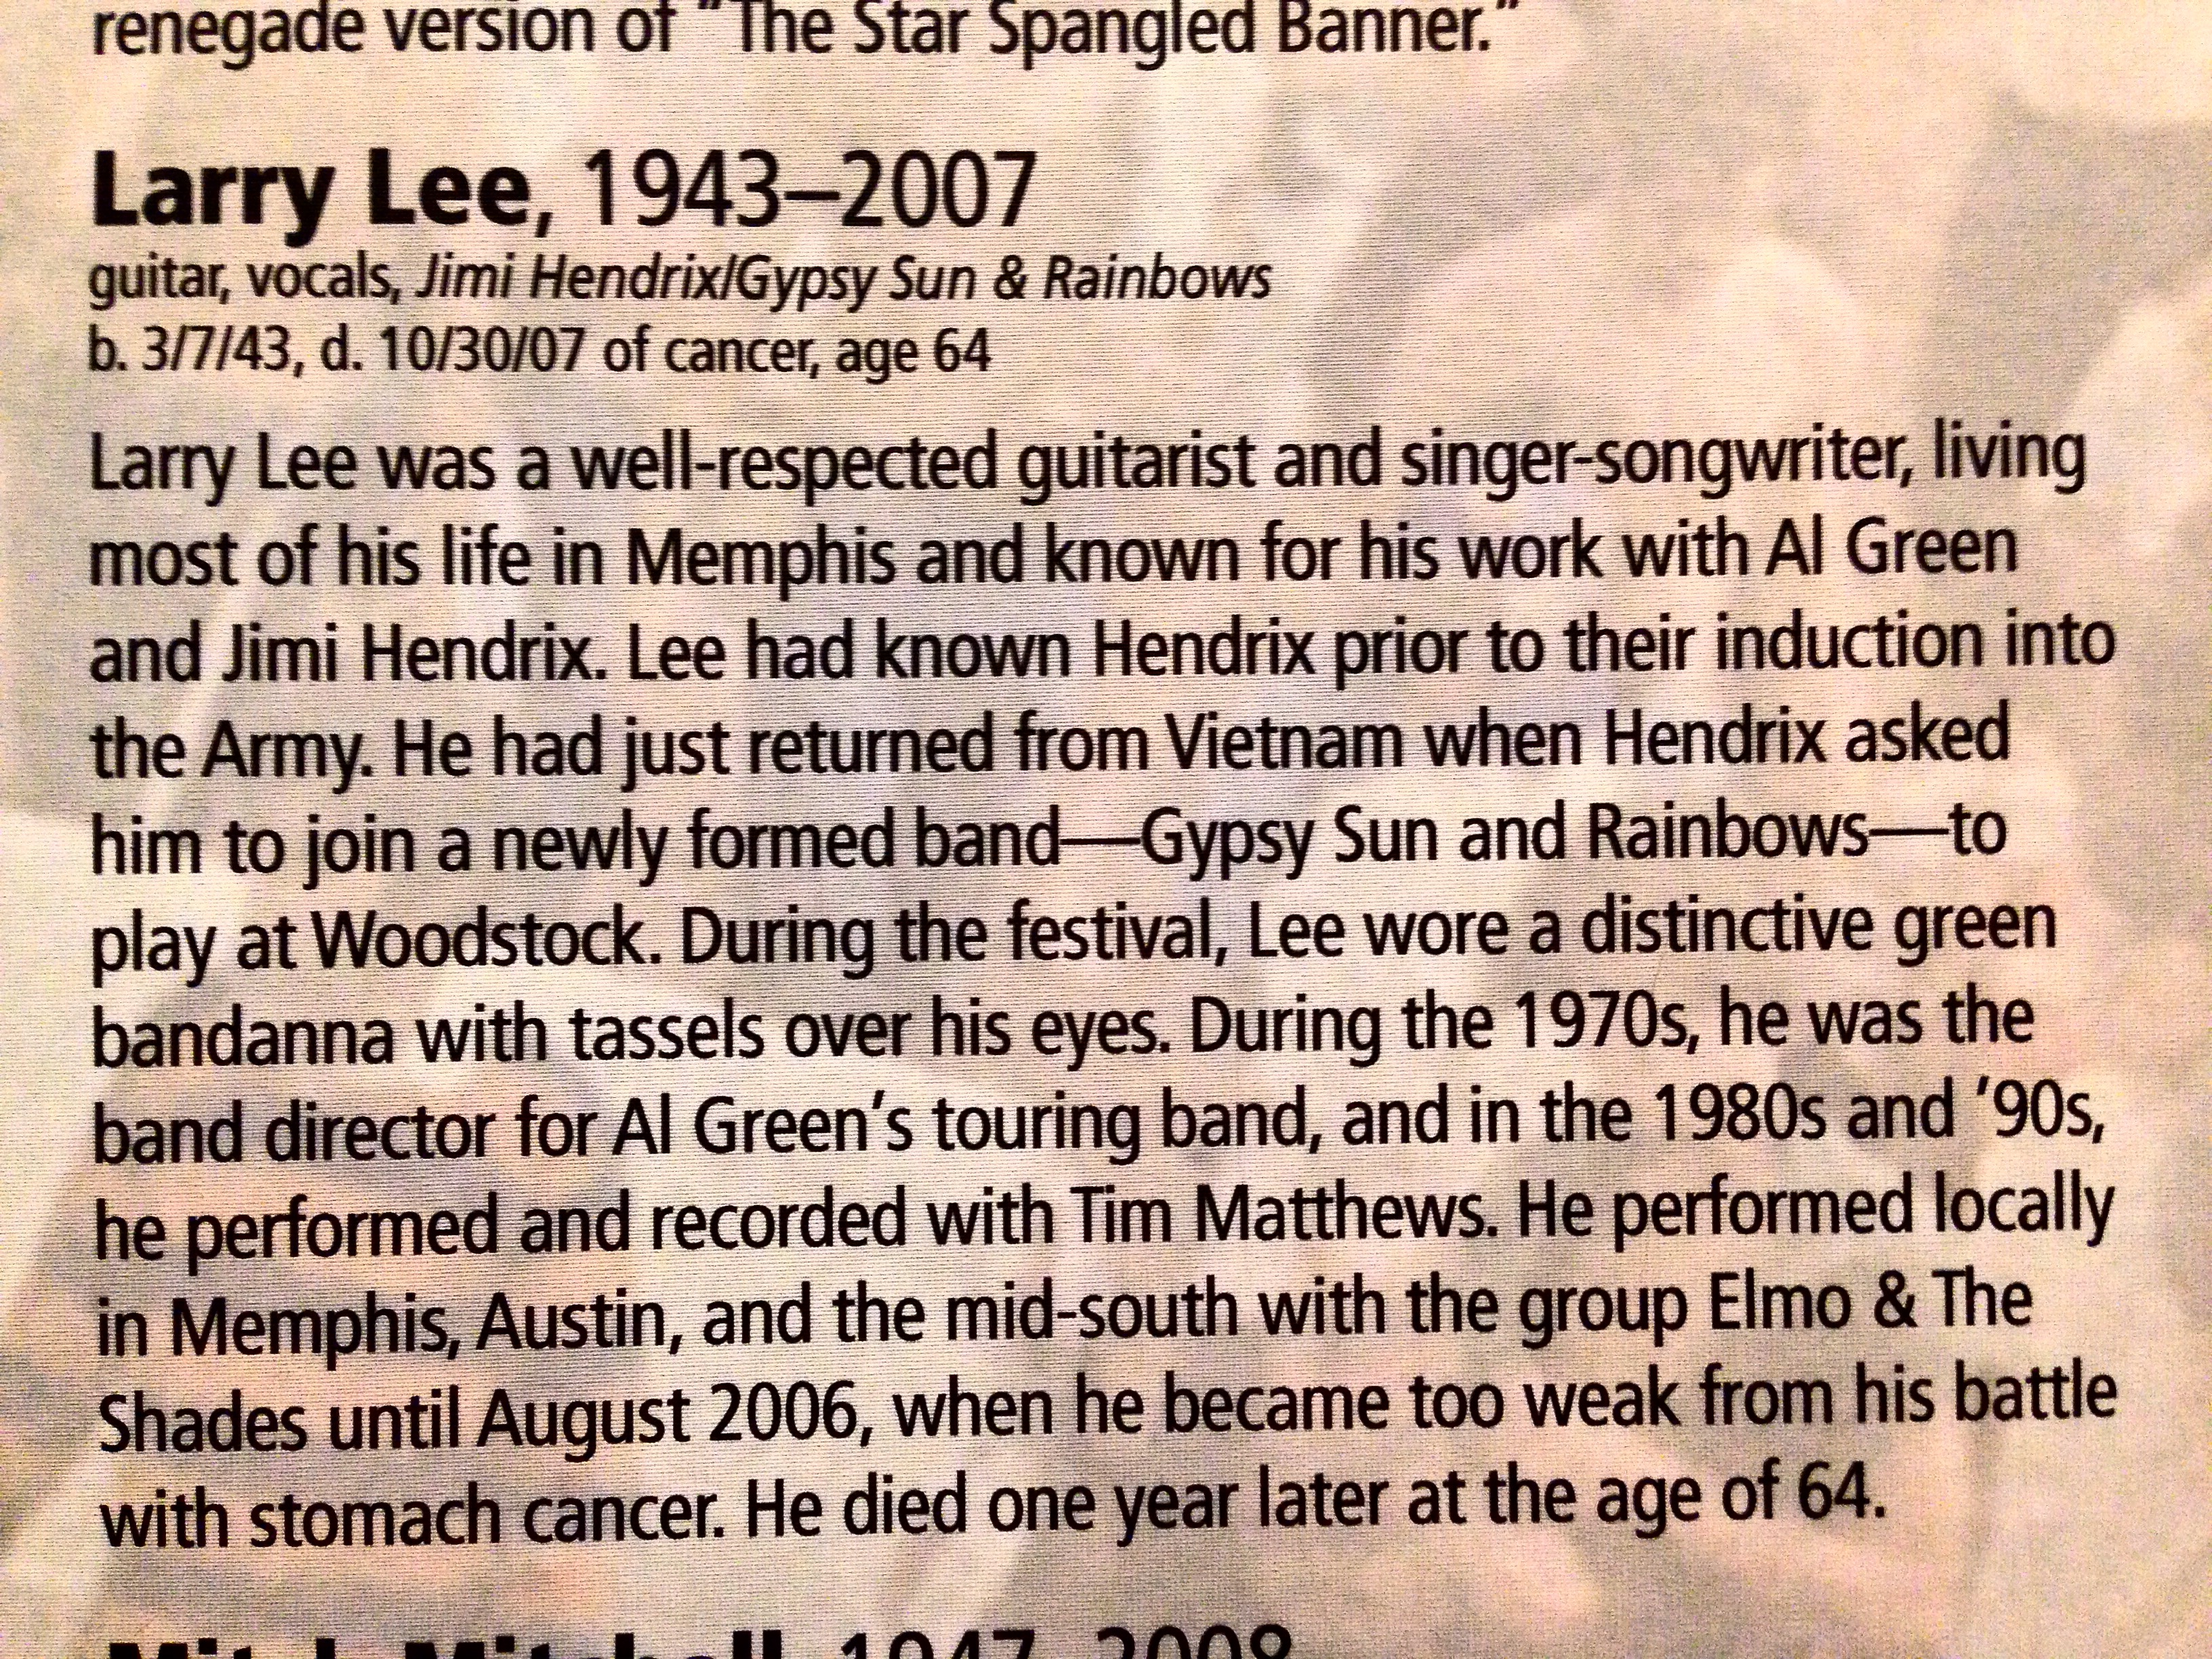 Larry Lee bio from BW wall